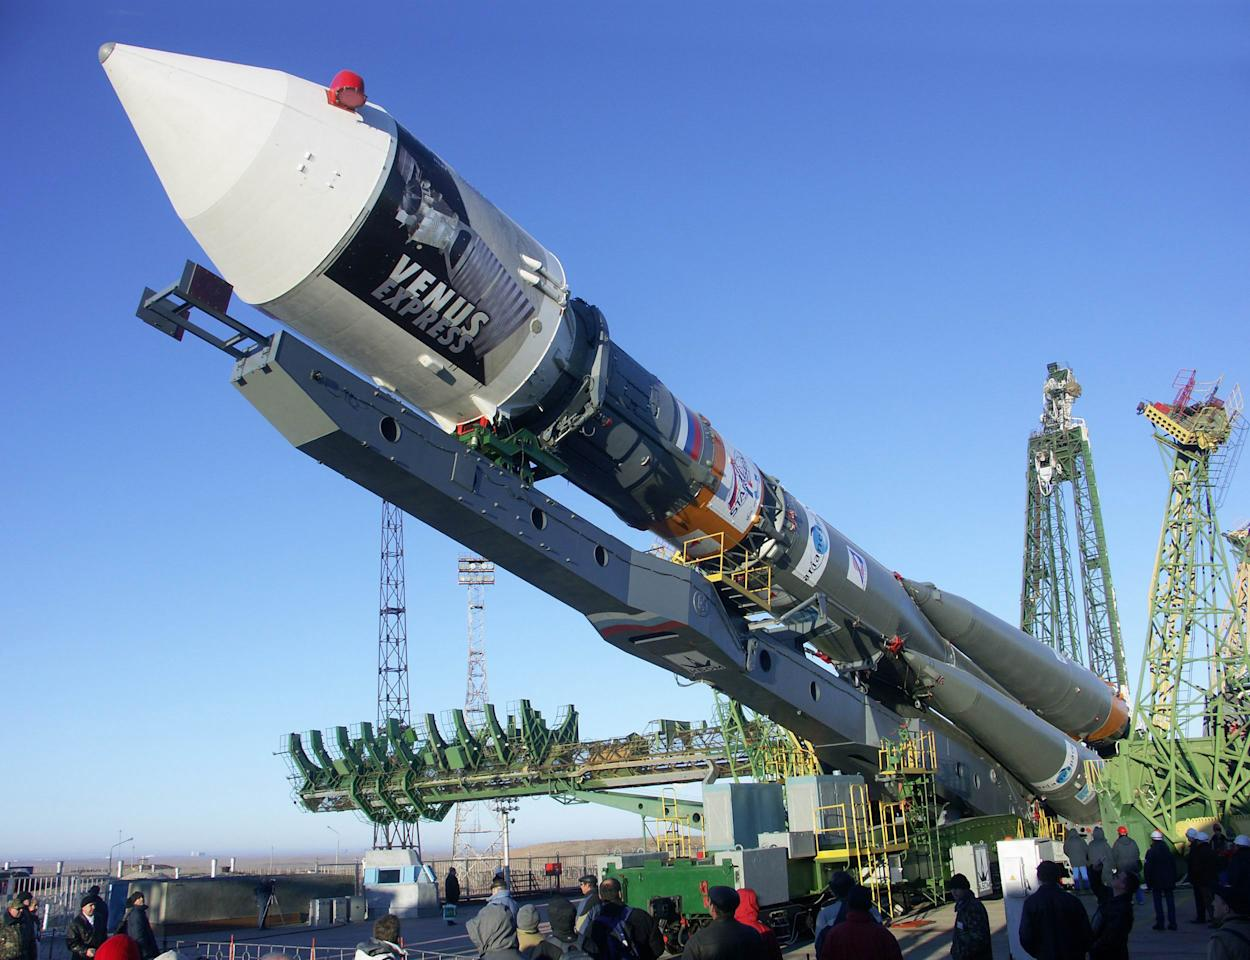 Soyuz-Fregat rocket with the Venus Express probe is installed on a launching site at the Baikonur cosmodrome in Kazakhstan, Saturday, Nov. 5, 2005. A blastoff for the European Space Agency's Venus Express probe to explore Venus was set for Nov. 9 after its earlier launch was postponed because of a booster rocket problem. (AP Photo)